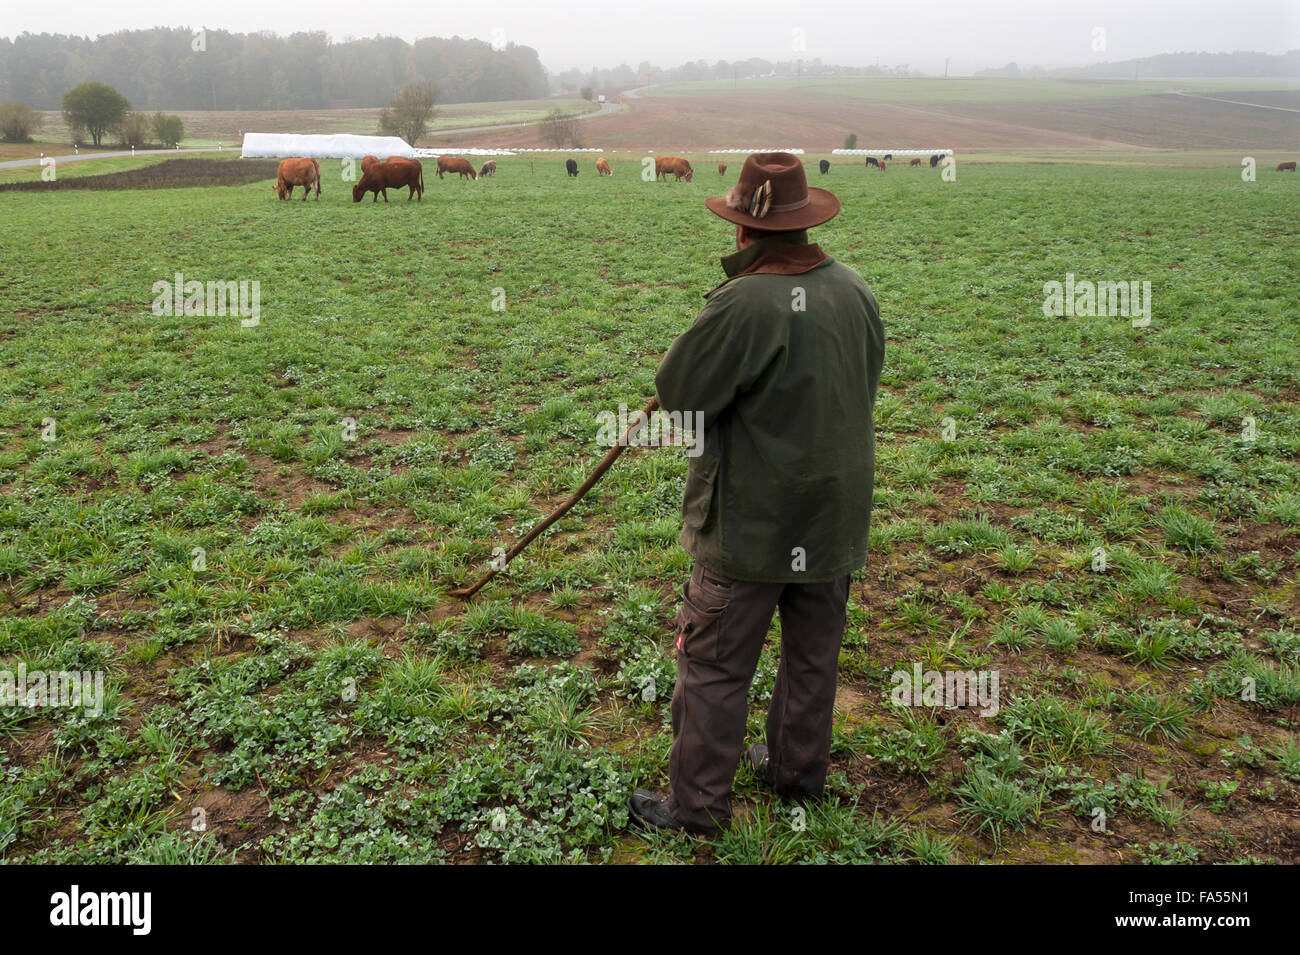 Farmer tending his Salers cattle in meadow, grass and clover meadow, Middle Franconia, Bavaria, Germany - Stock Image